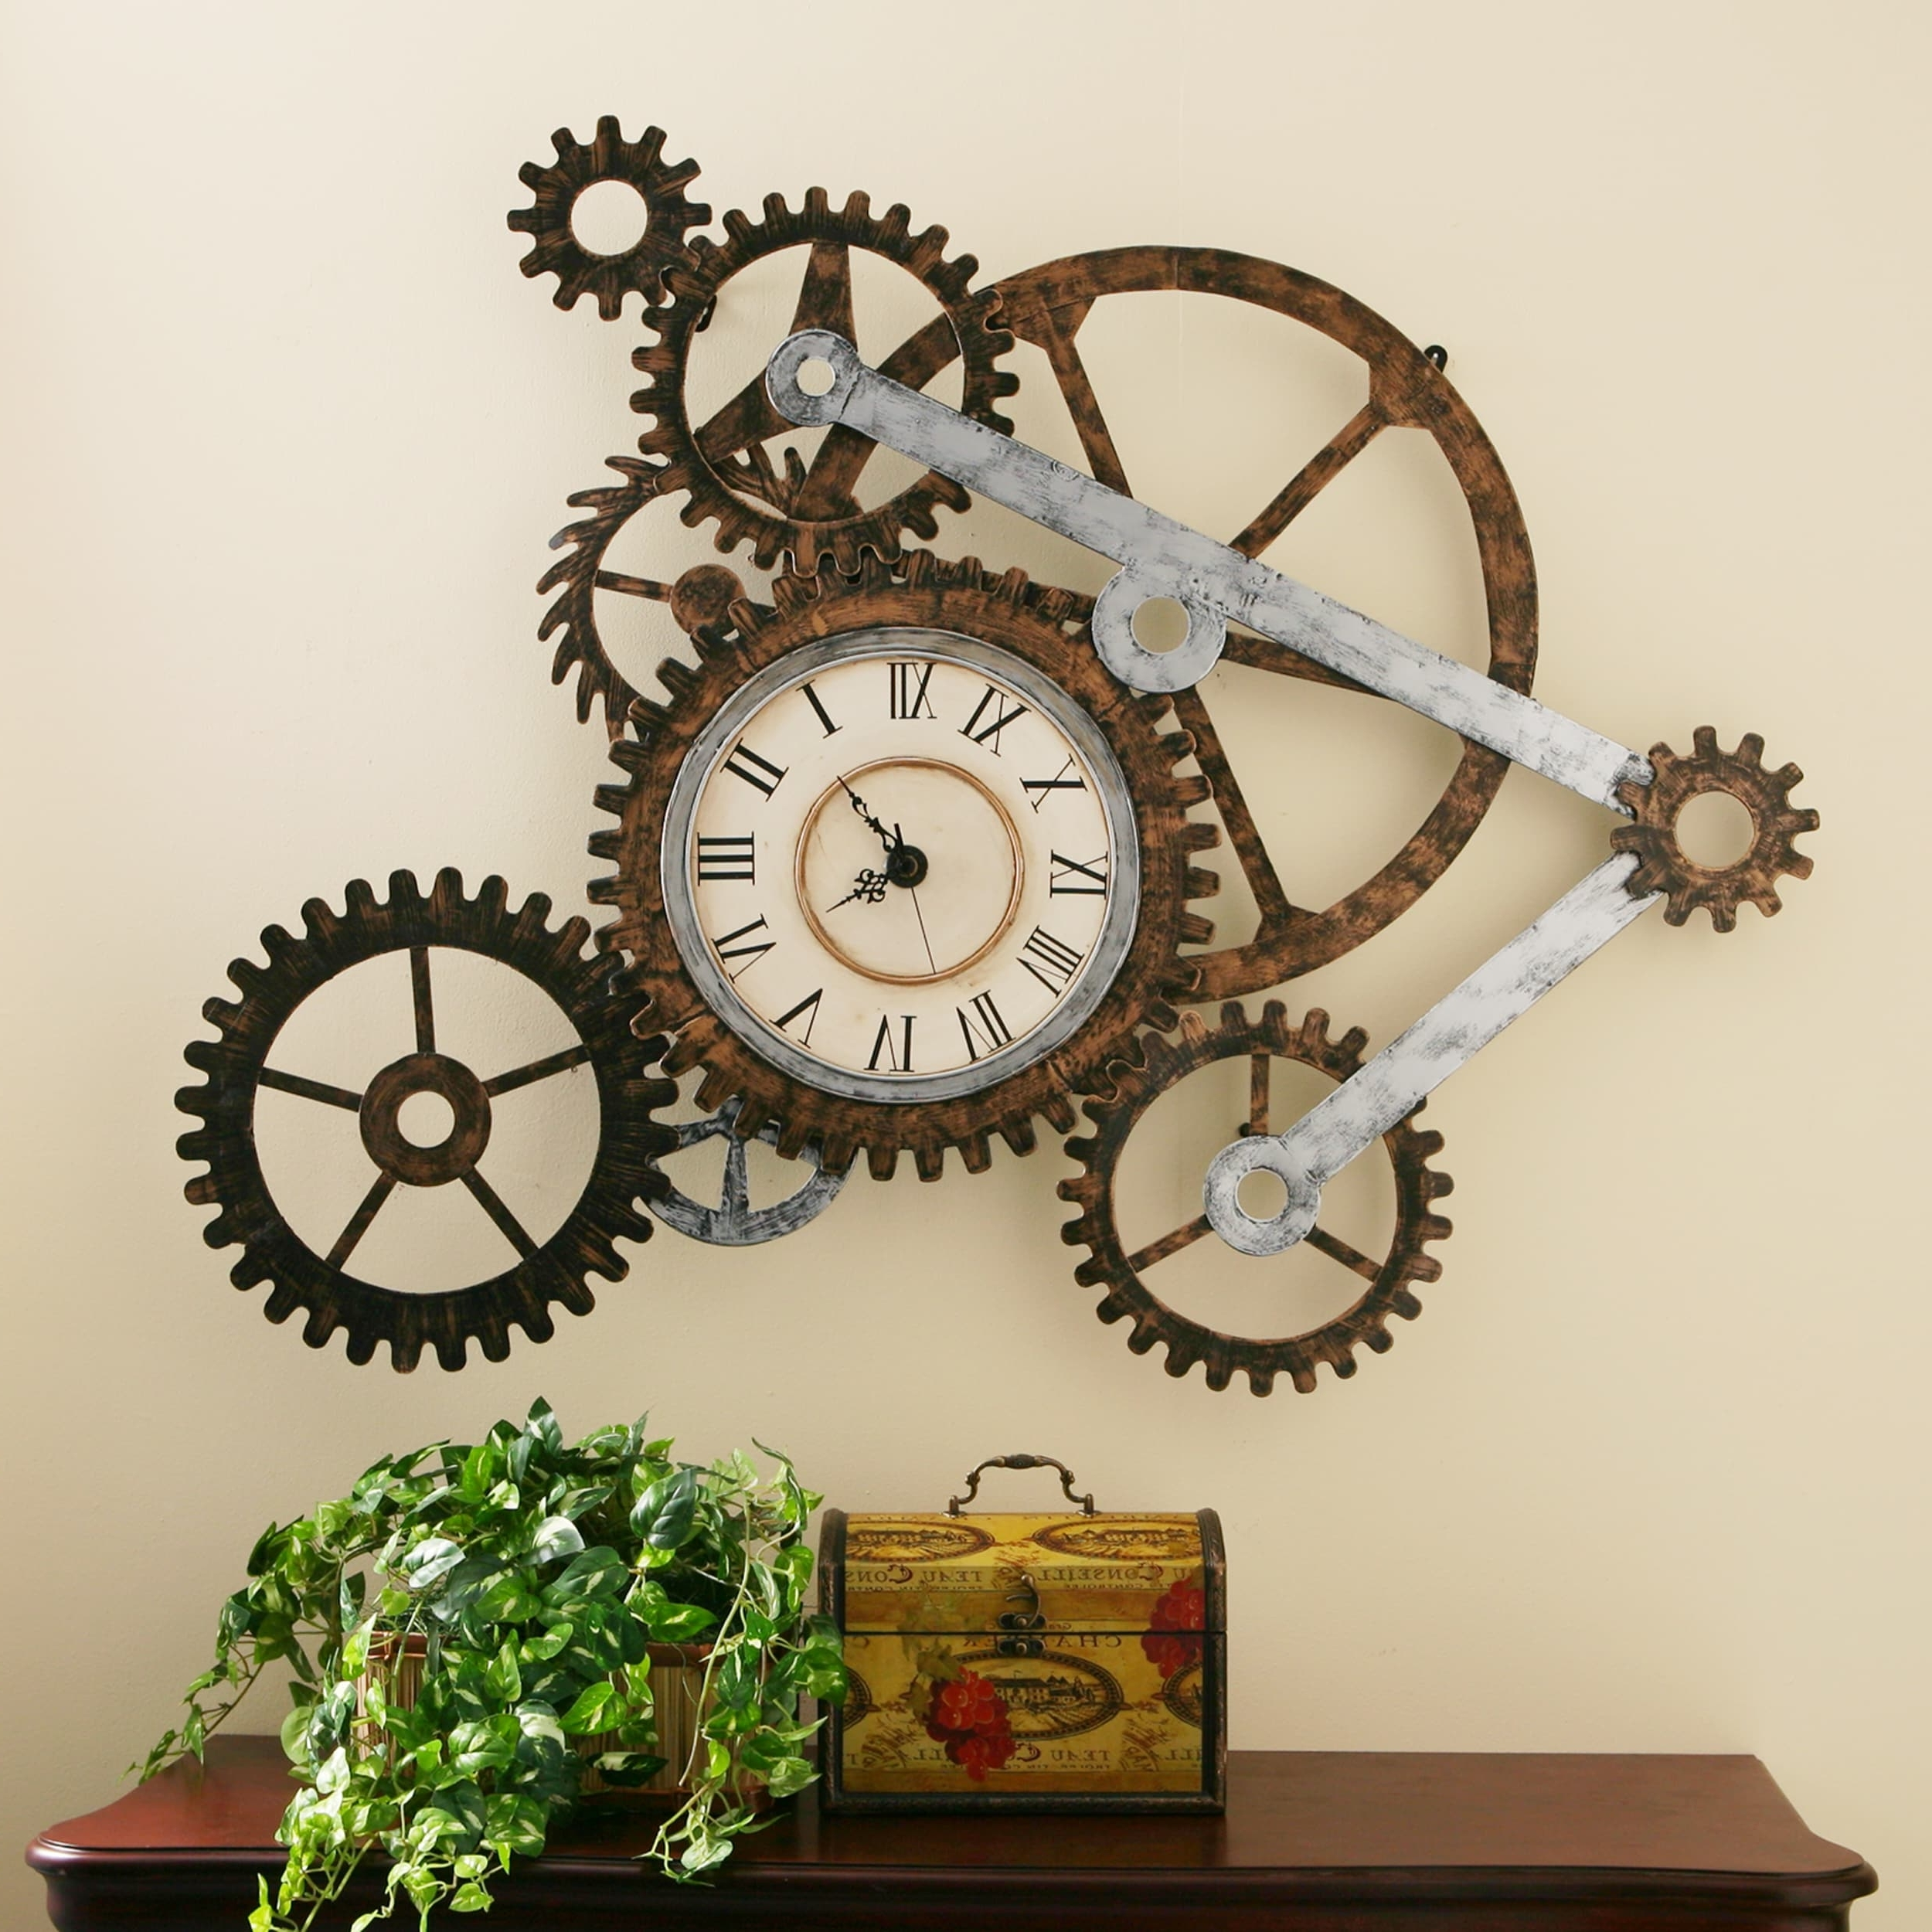 Harper Blvd Clock And Gears Wall Art – Free Shipping On Orders For 2017 Clock Wall Accents (Gallery 1 of 15)